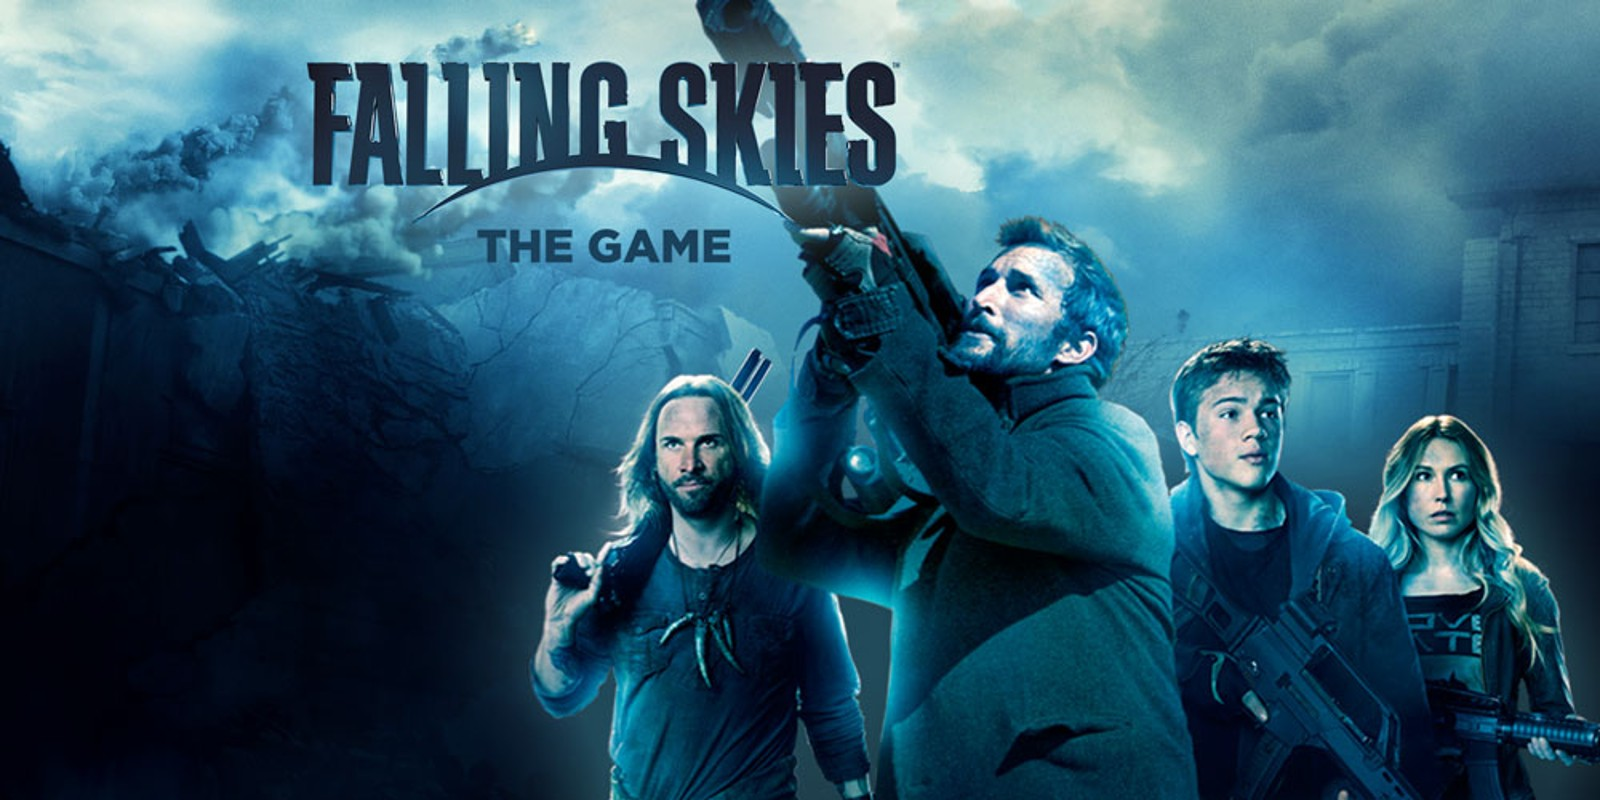 Falling skies the game wii u download software games nintendo falling skies the game voltagebd Images